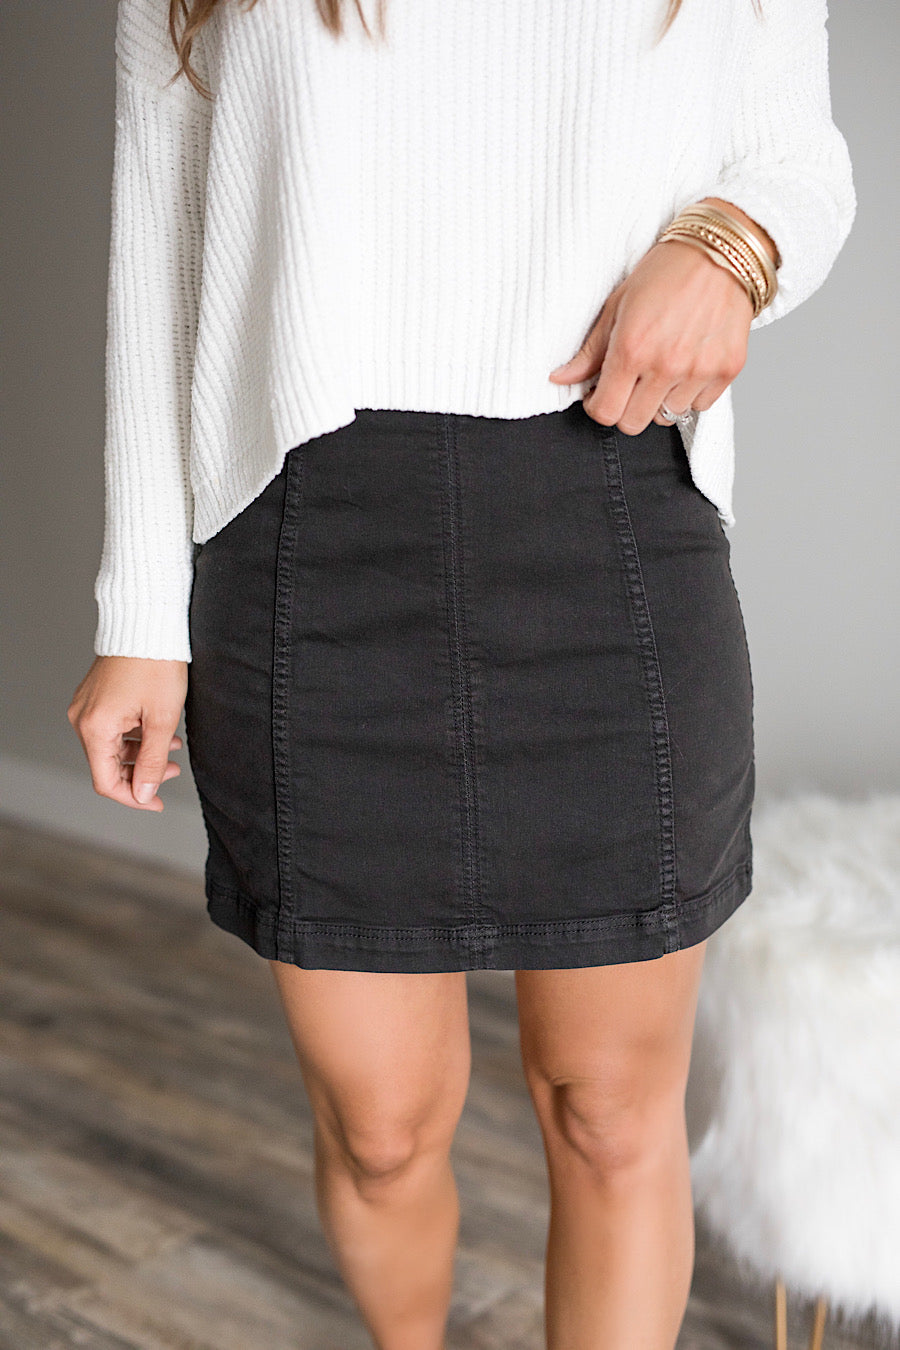 Free People Stretch Denim Skirt in Black